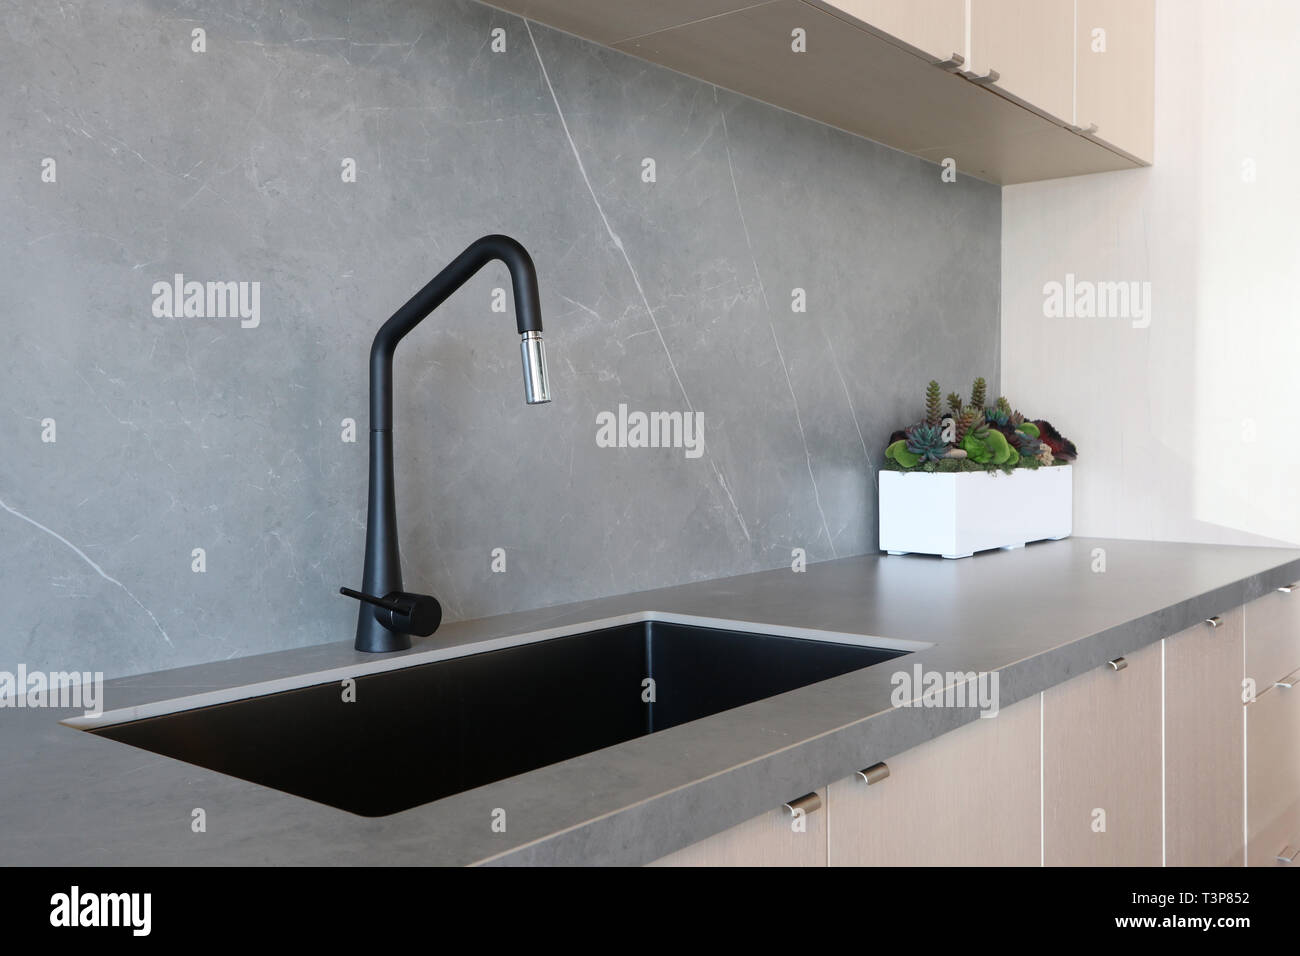 A Black Sink And Matt Finish Black Faucet Set Against A Grey Countertop And Backsplash Made Of Porcelain Slabs That Mimic The Natural Look Of Stones Stock Photo Alamy